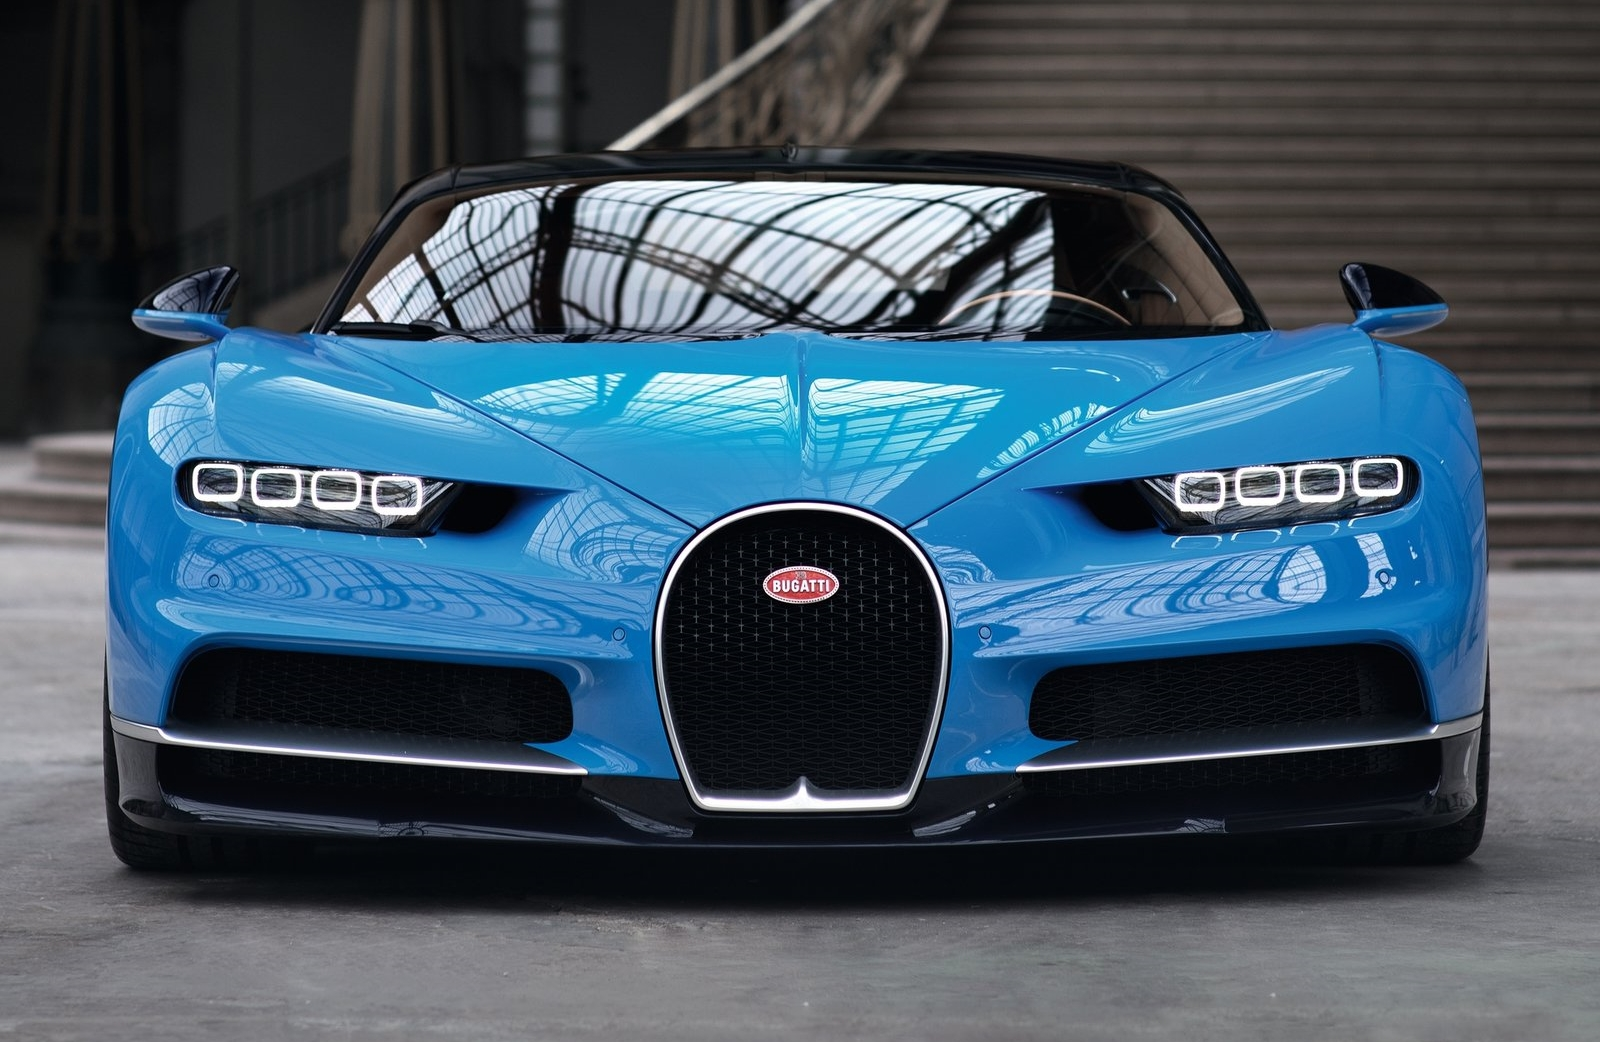 Bugatti Chiron Wallpapers Hd Resolution Festival